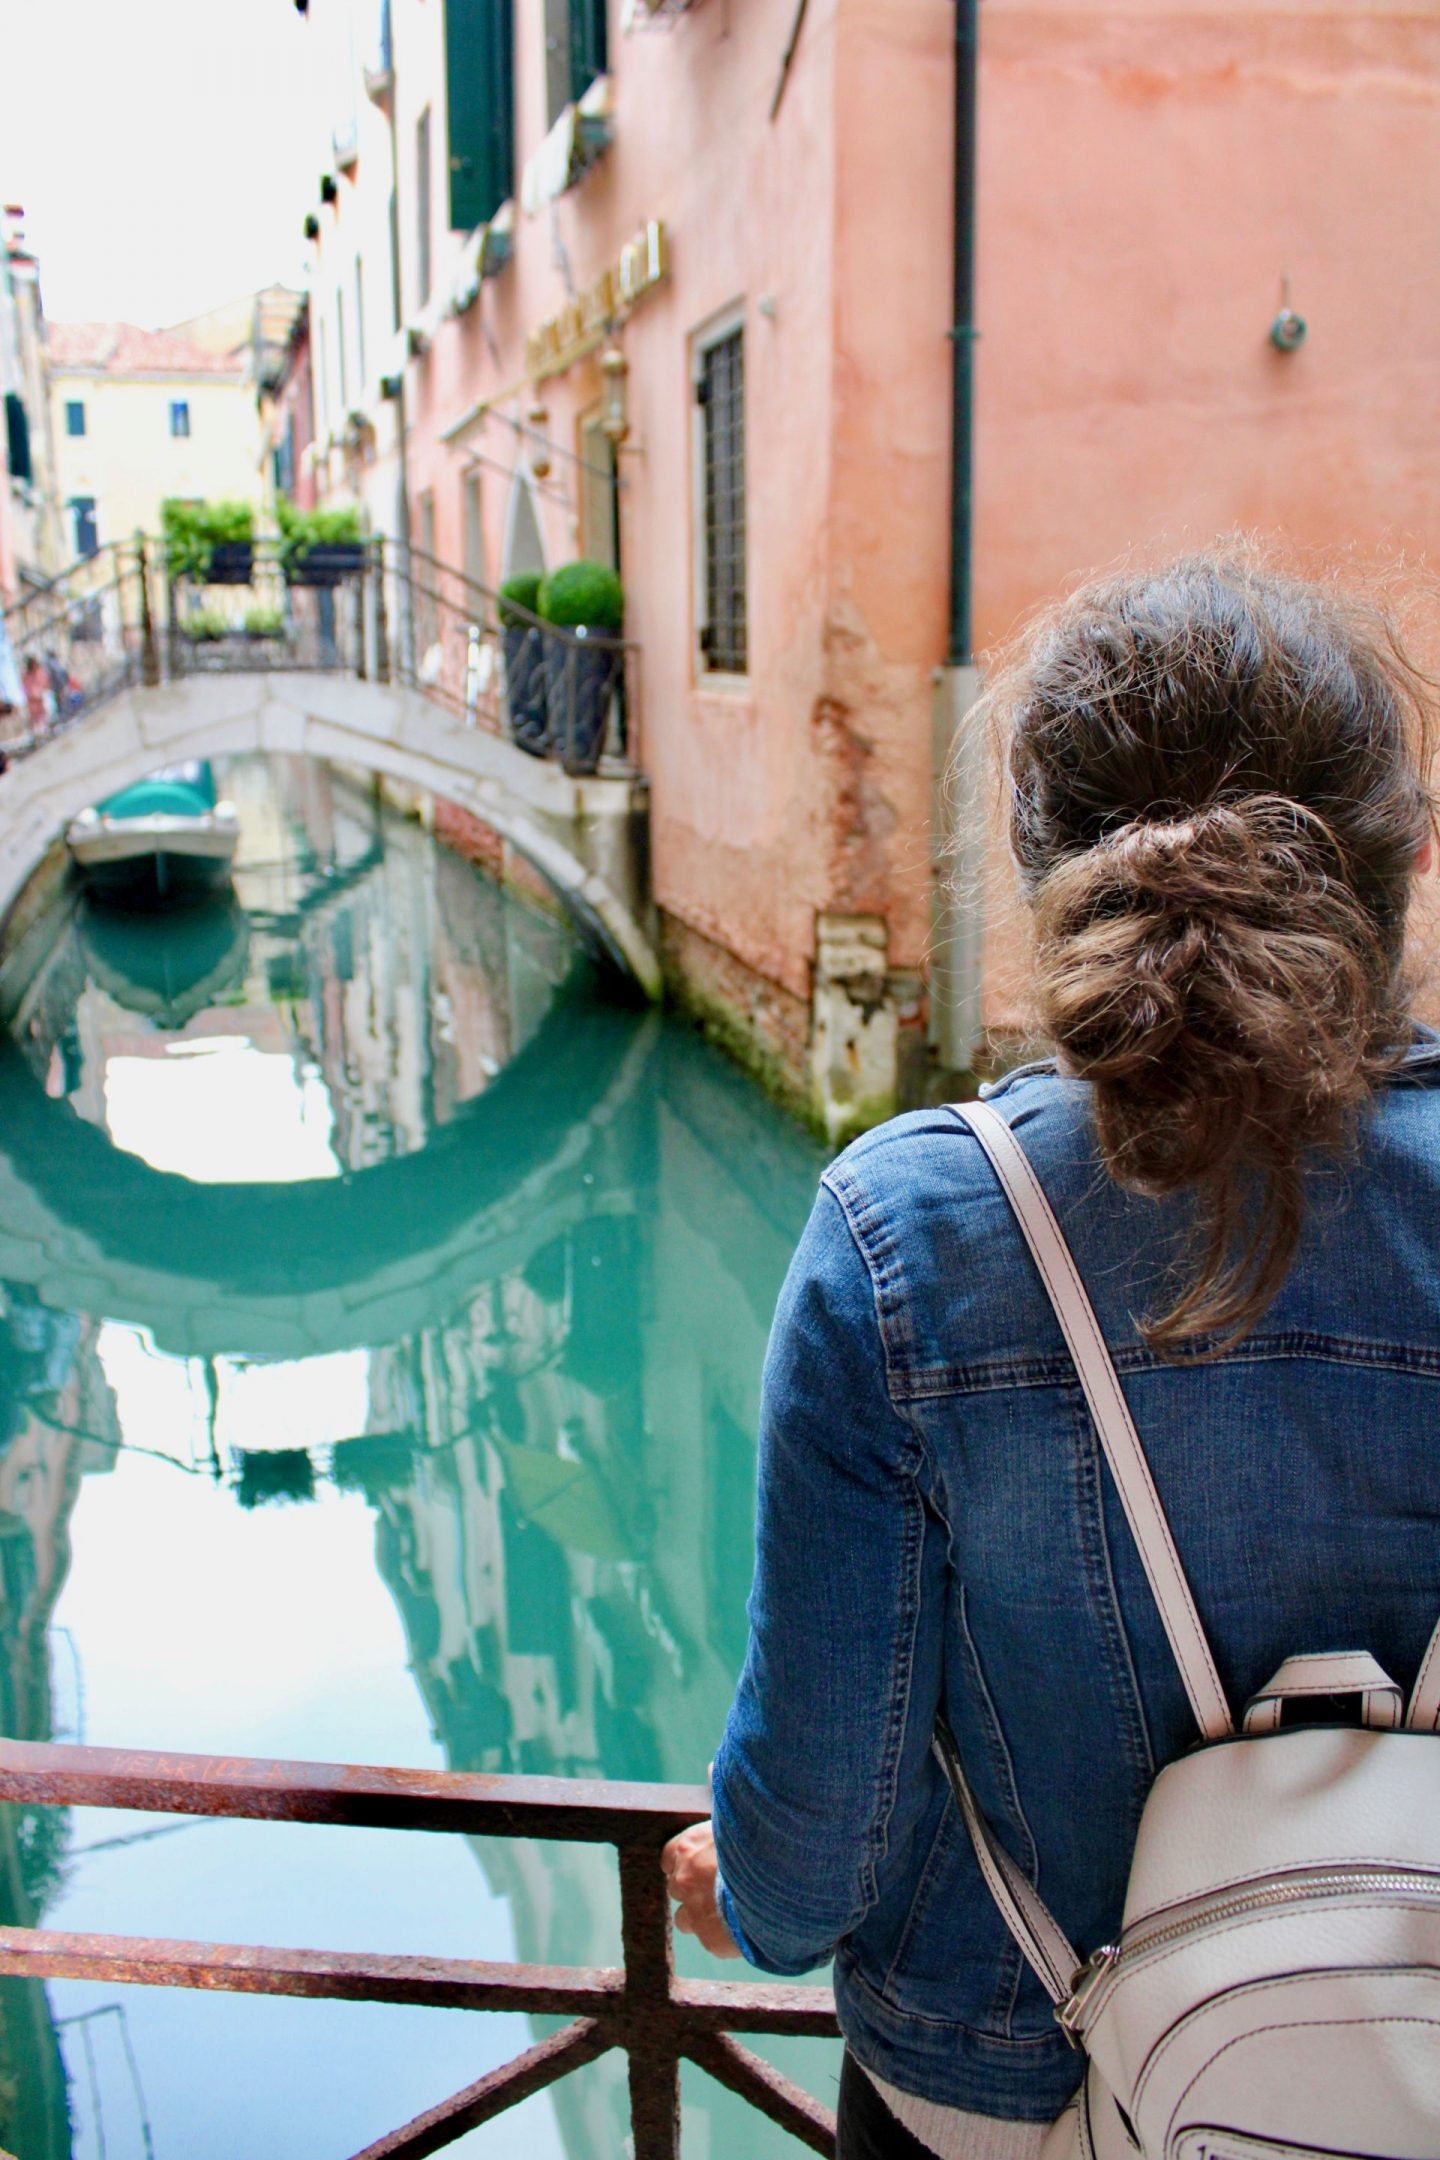 Travel tips for visiting Venice: Nell looking out over a narrow canal in Venice with bright blue water